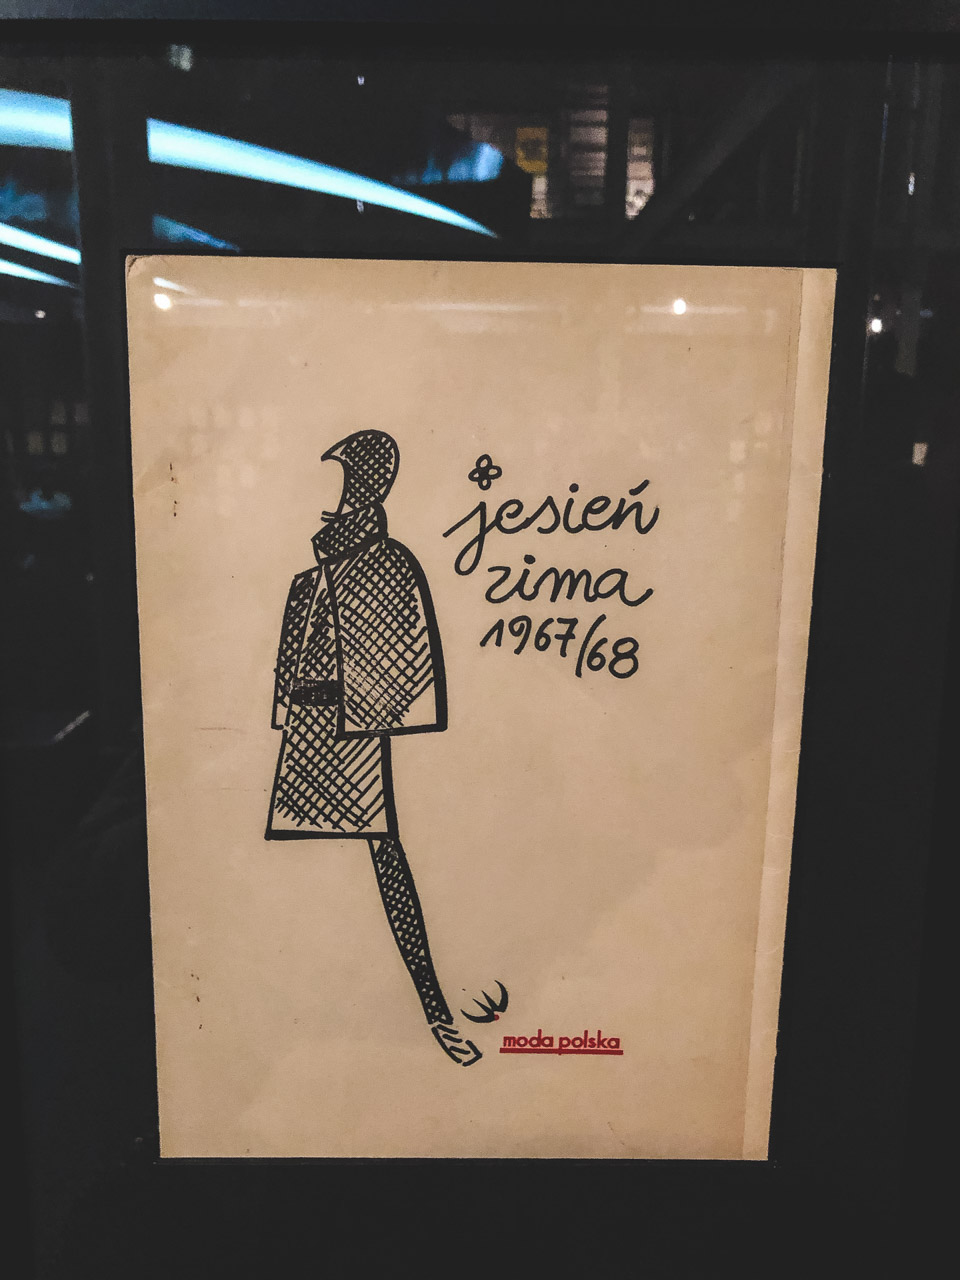 A graphic announcing the Autumn/Winter 1967/68 Moda Polska collection on display at The Central Museum of Textiles in Łódź, Poland